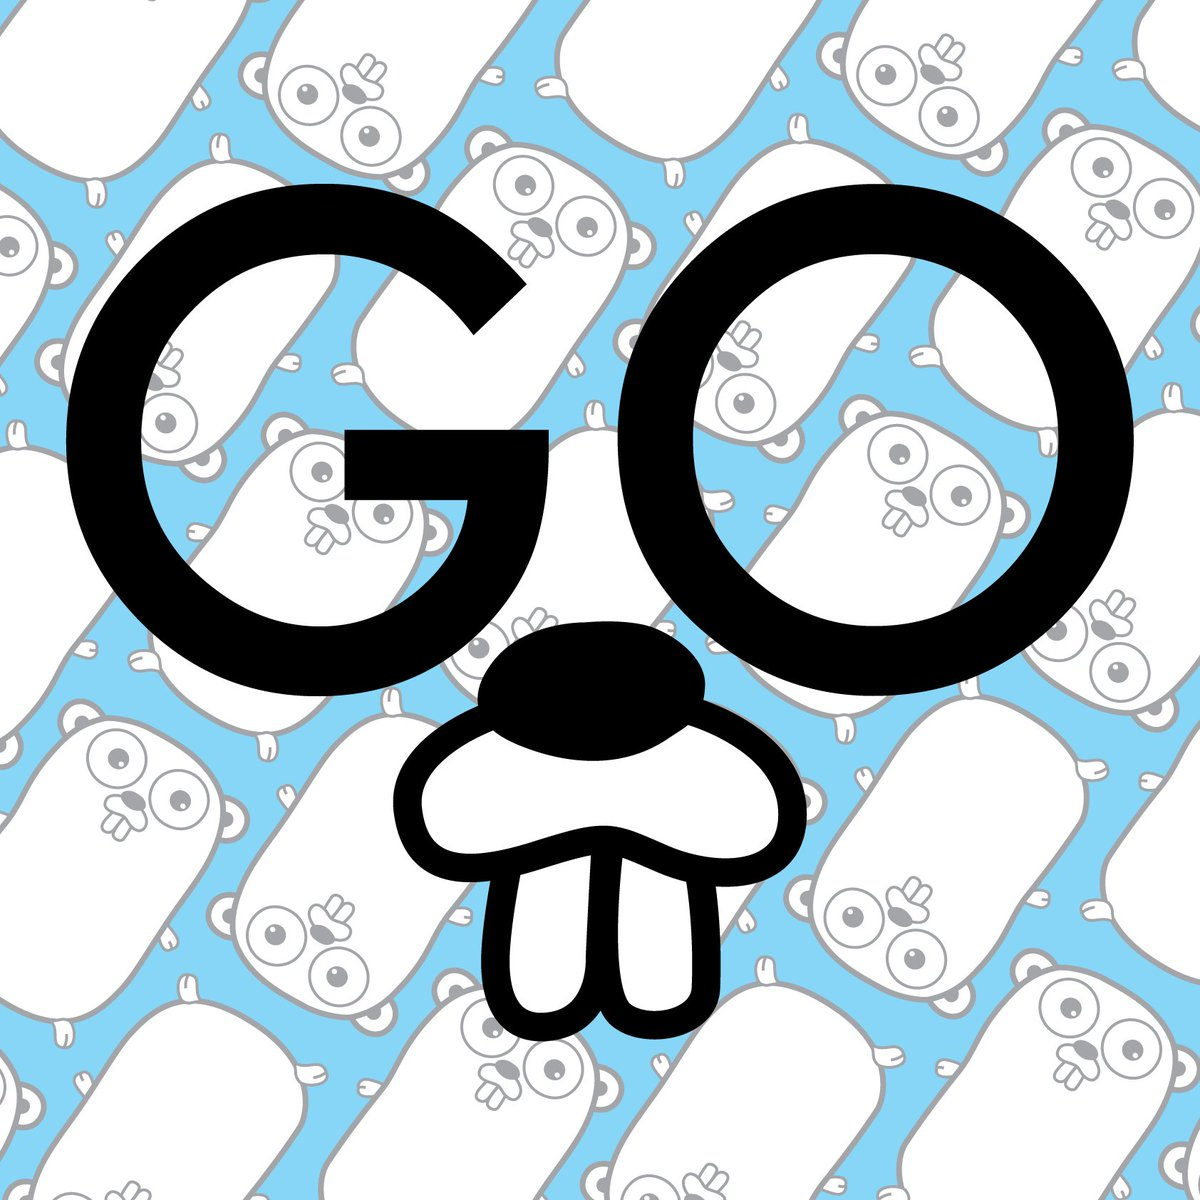 Go 1.6 has been released. https://t.co/TW4k94f8hs  Get it while it's hot! https://t.co/StazJXrC1k  #golang https://t.co/0joL38RQai